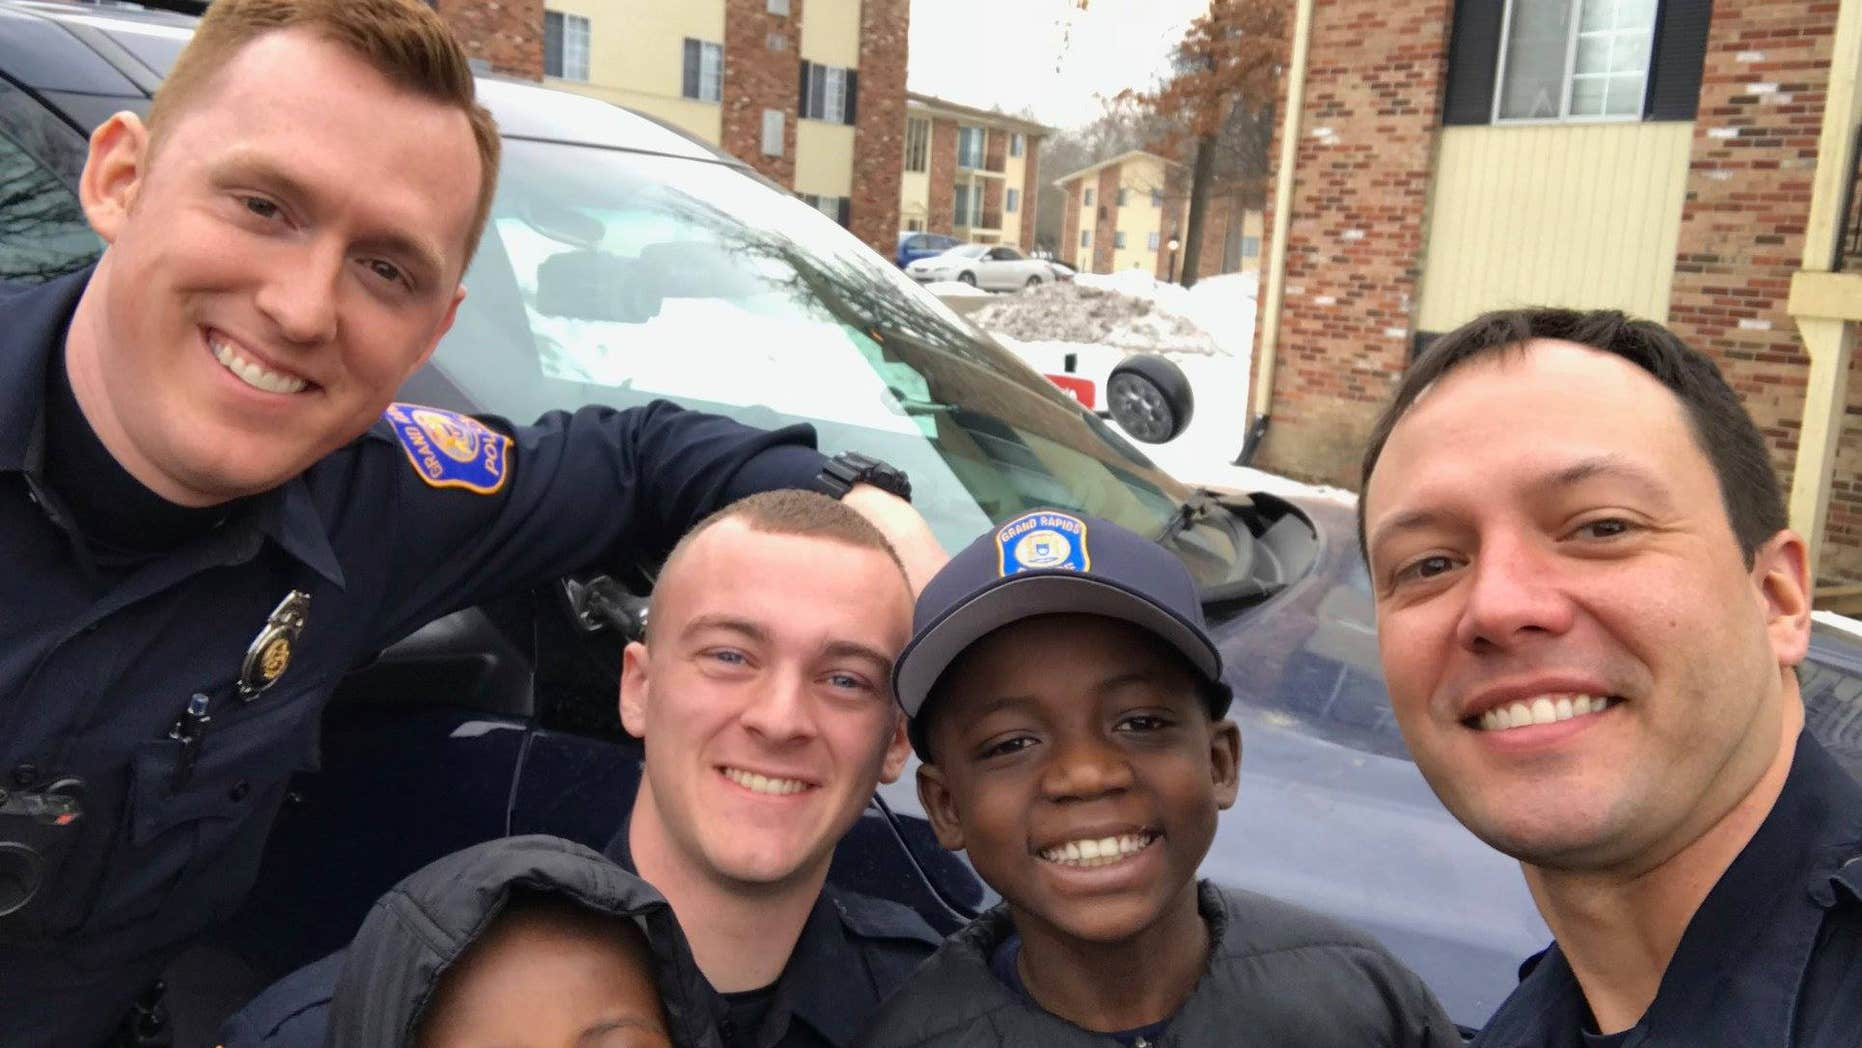 Grand Rapids police officers helped 9-year-old Thomas Daniel celebrate his birthday after no one showed up to his party.